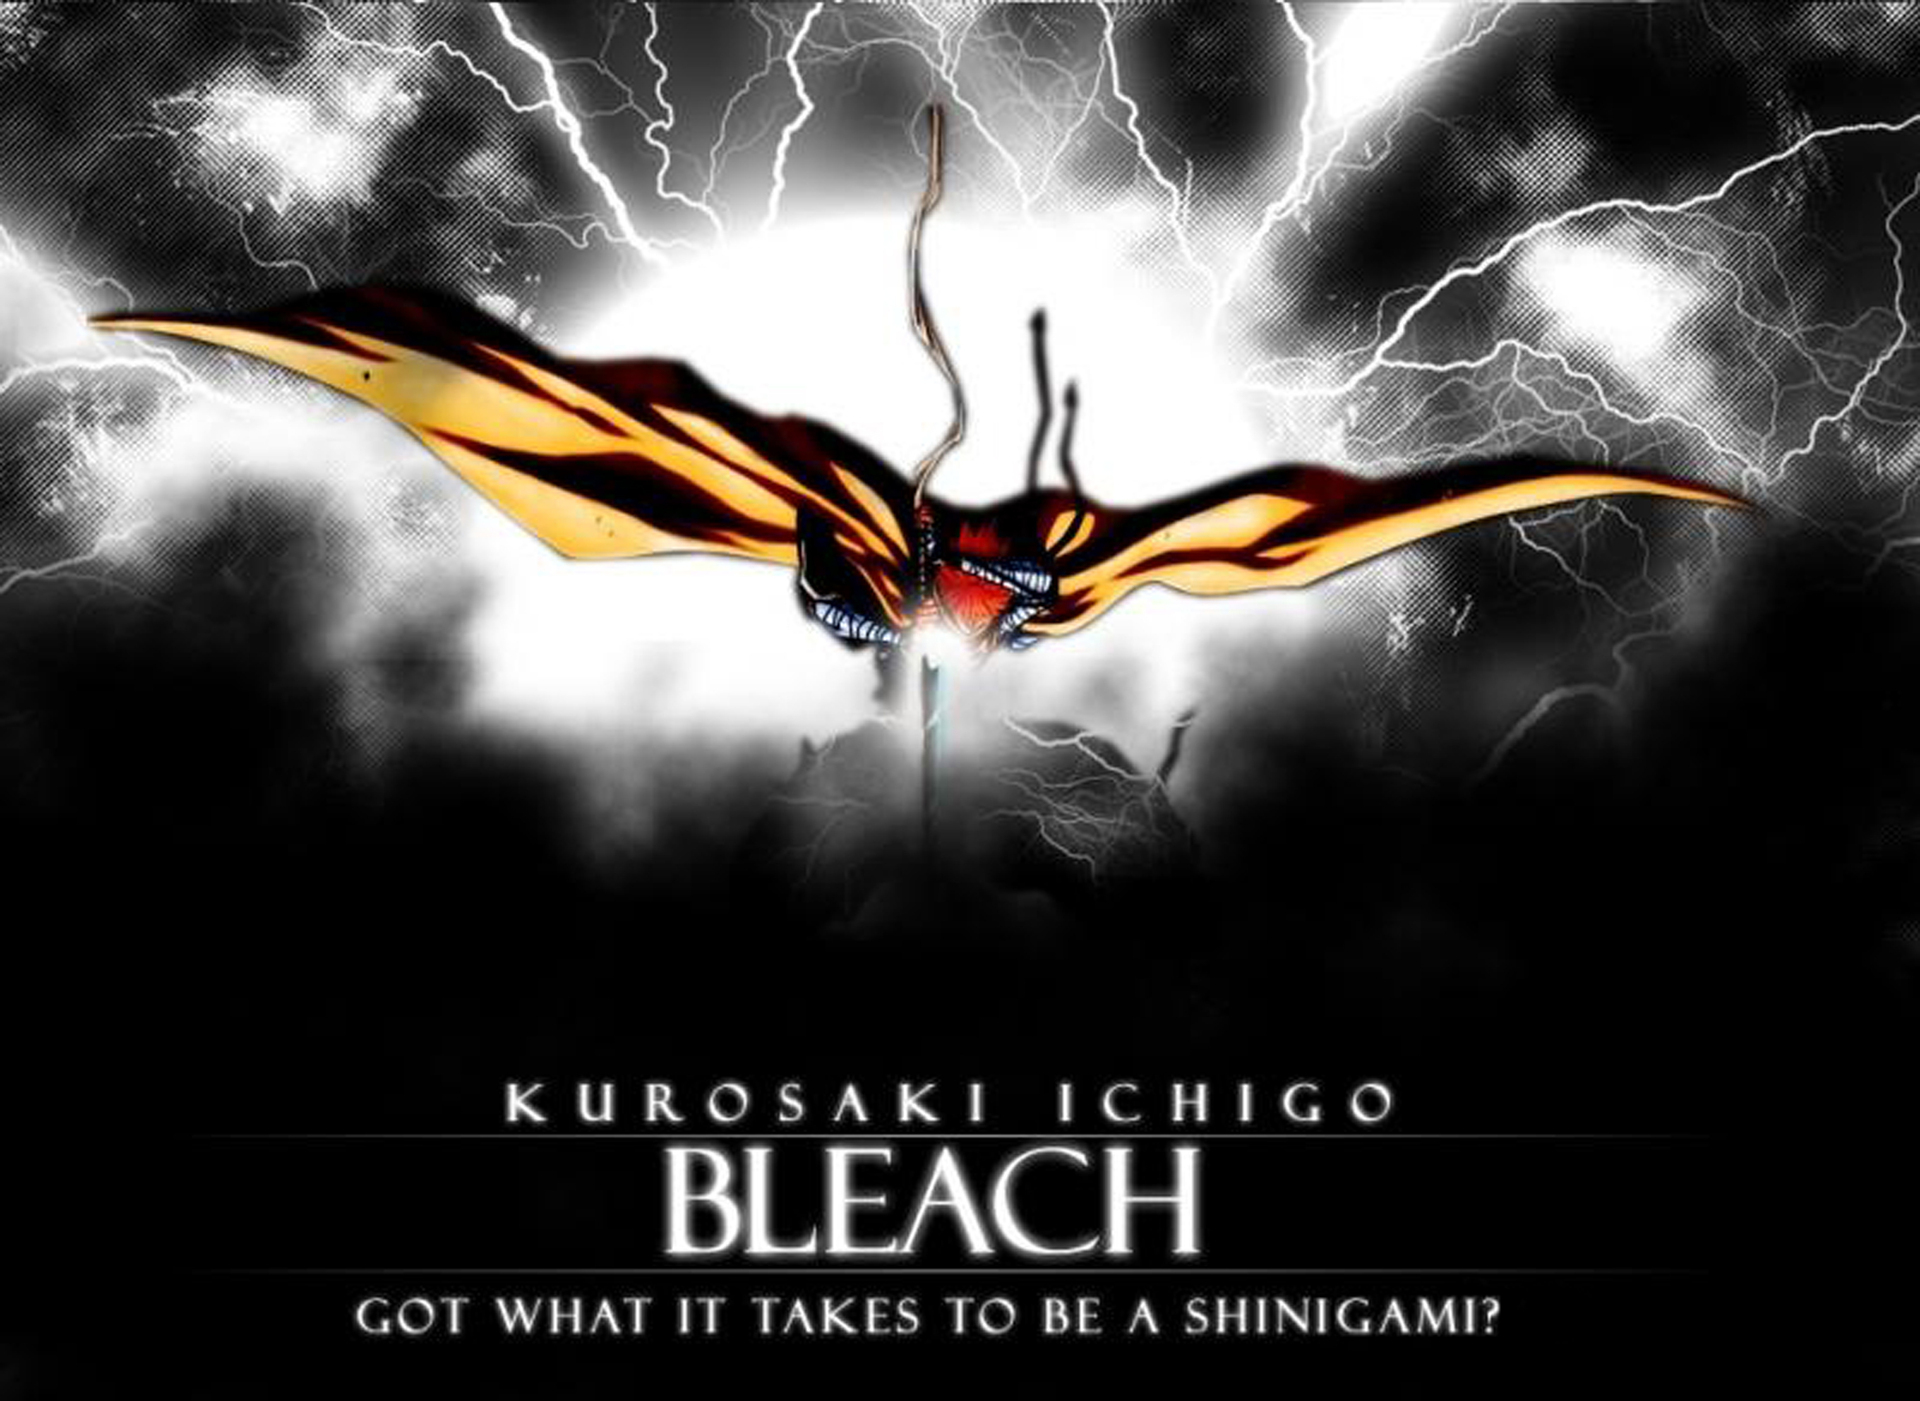 Got What It Takes To Be A Shinigami?